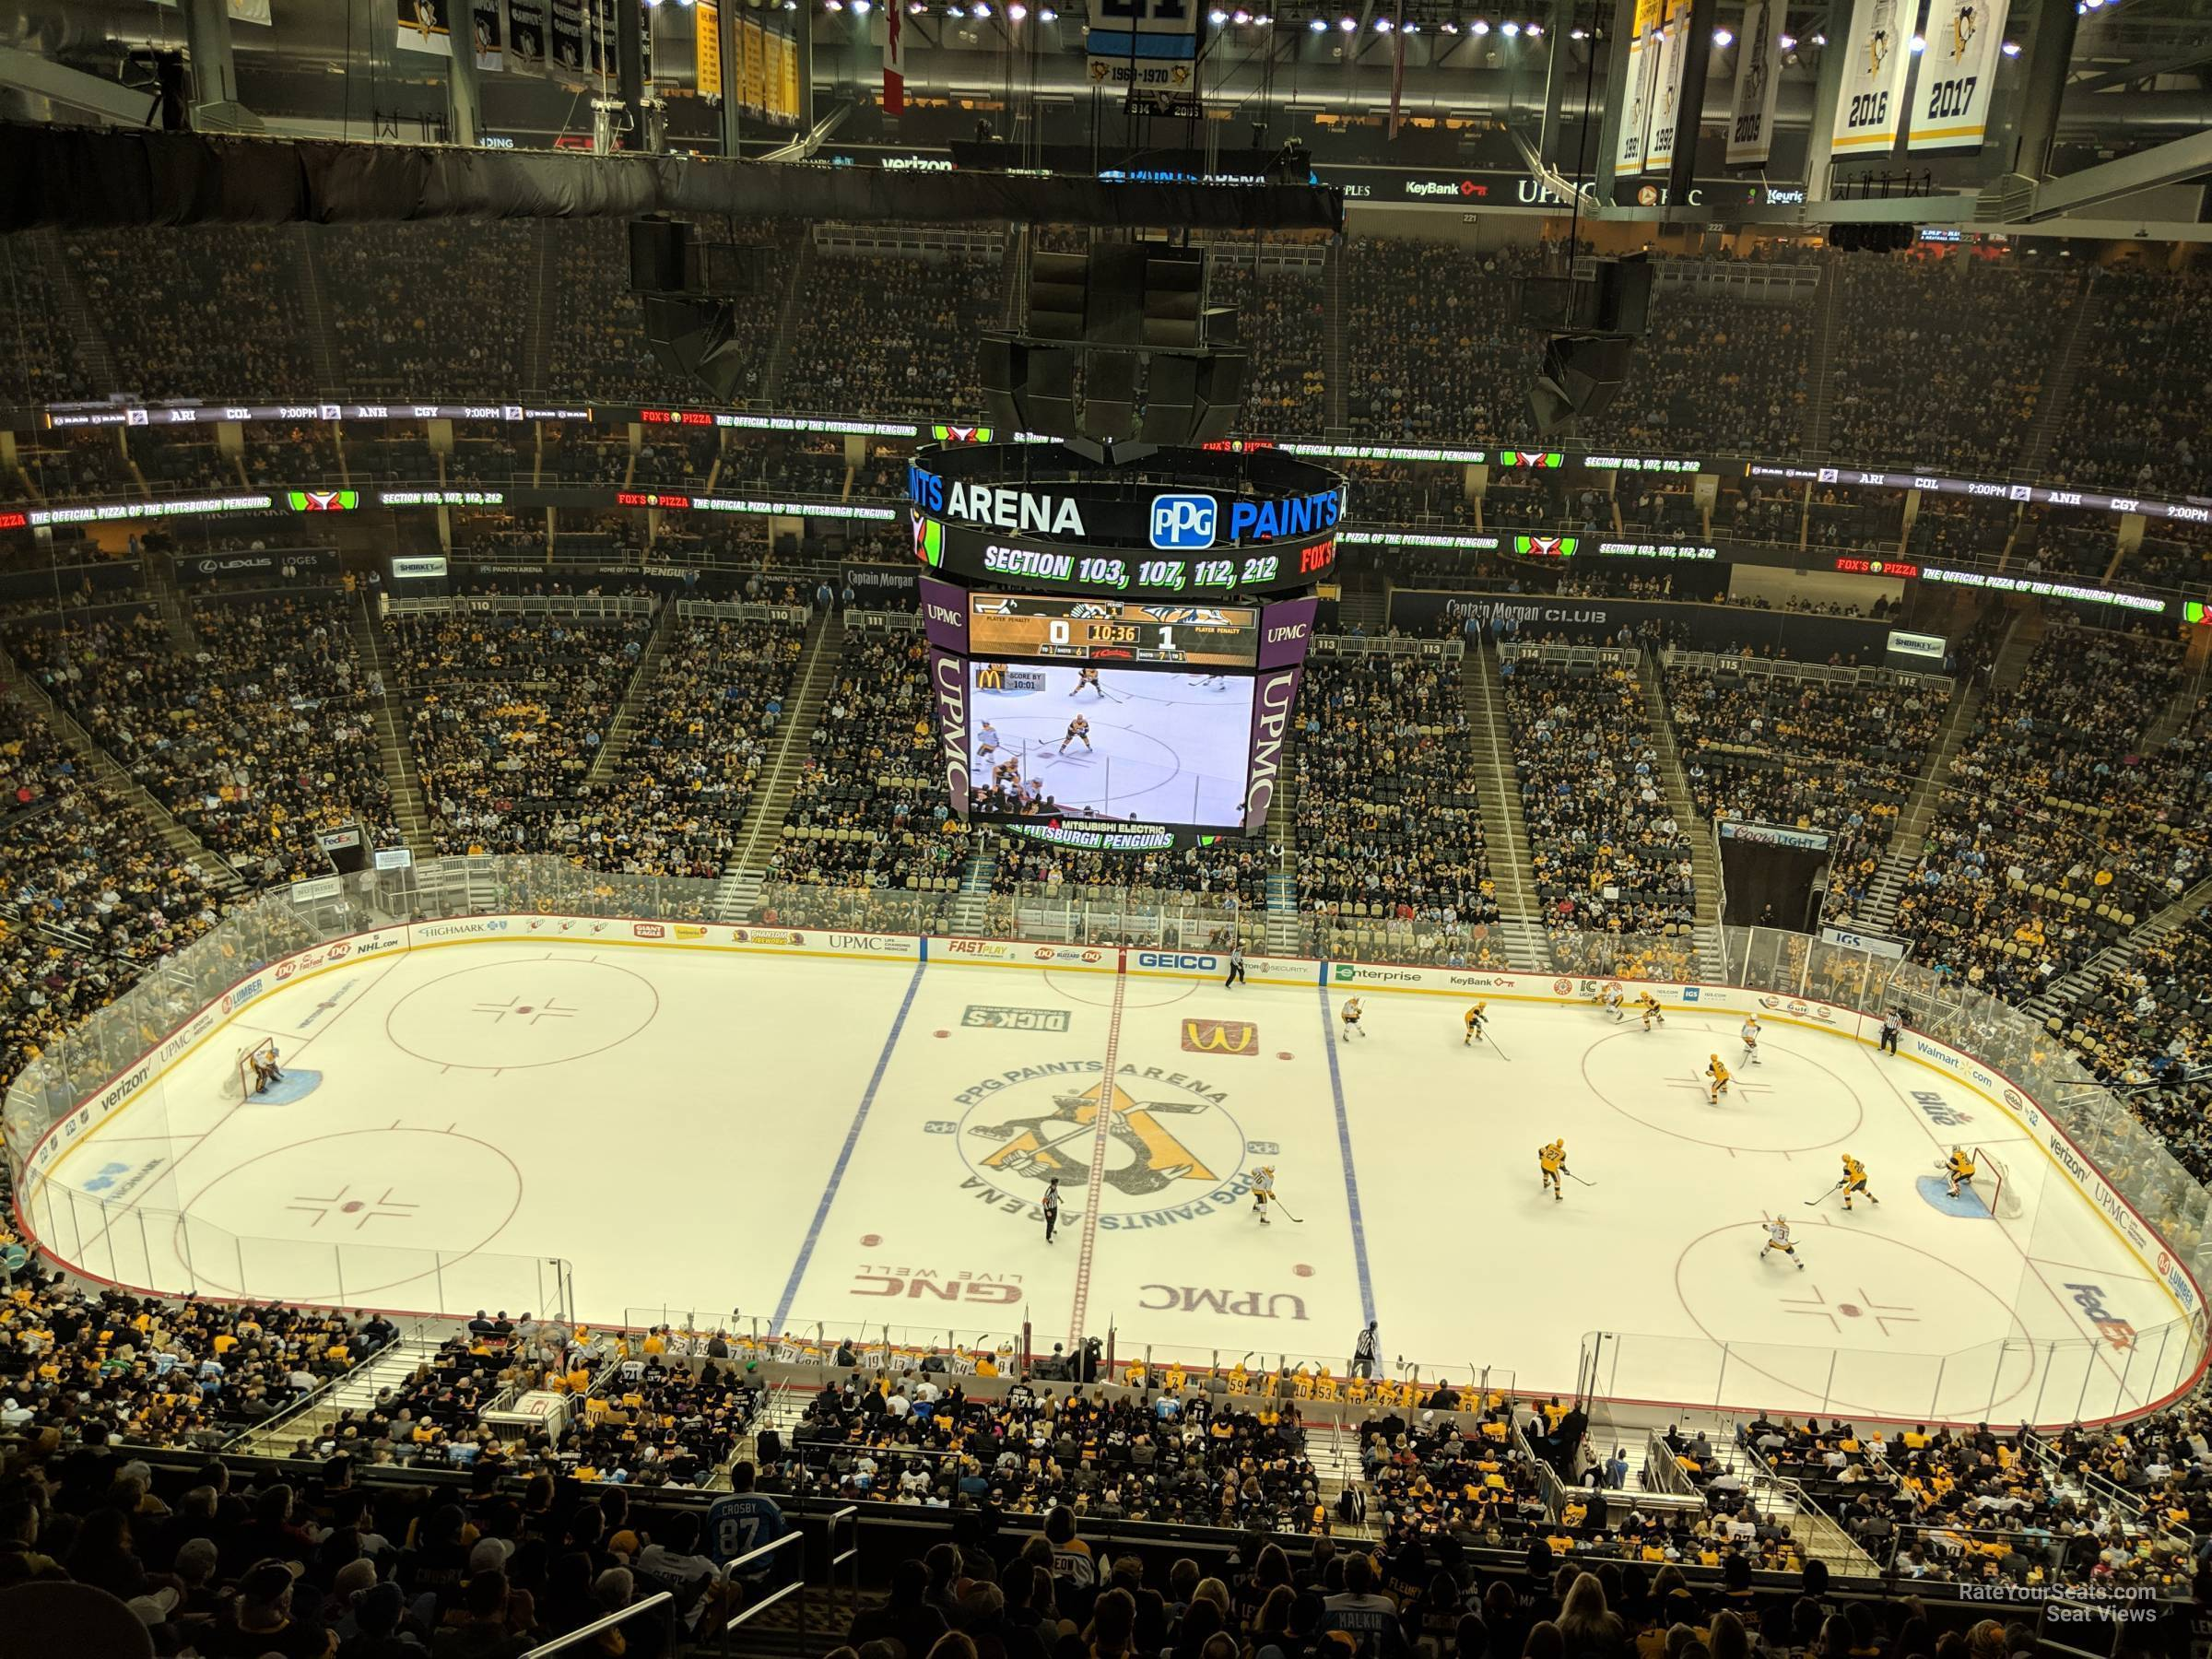 Section 202 seat view